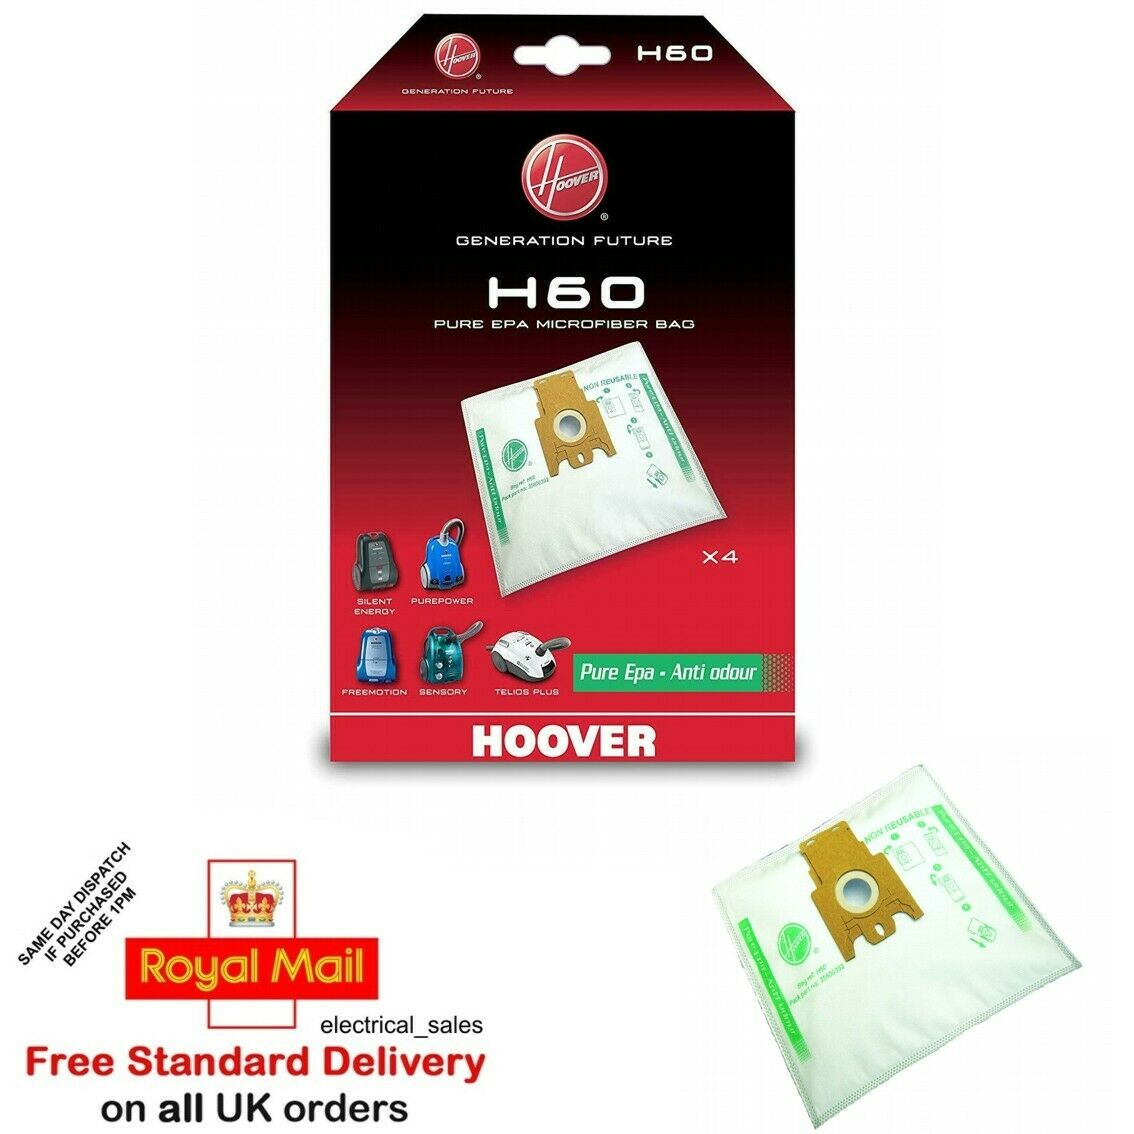 Hoover Genuine H60 Bags Sensory Purepower Silent Energy Freemotion Cylinders